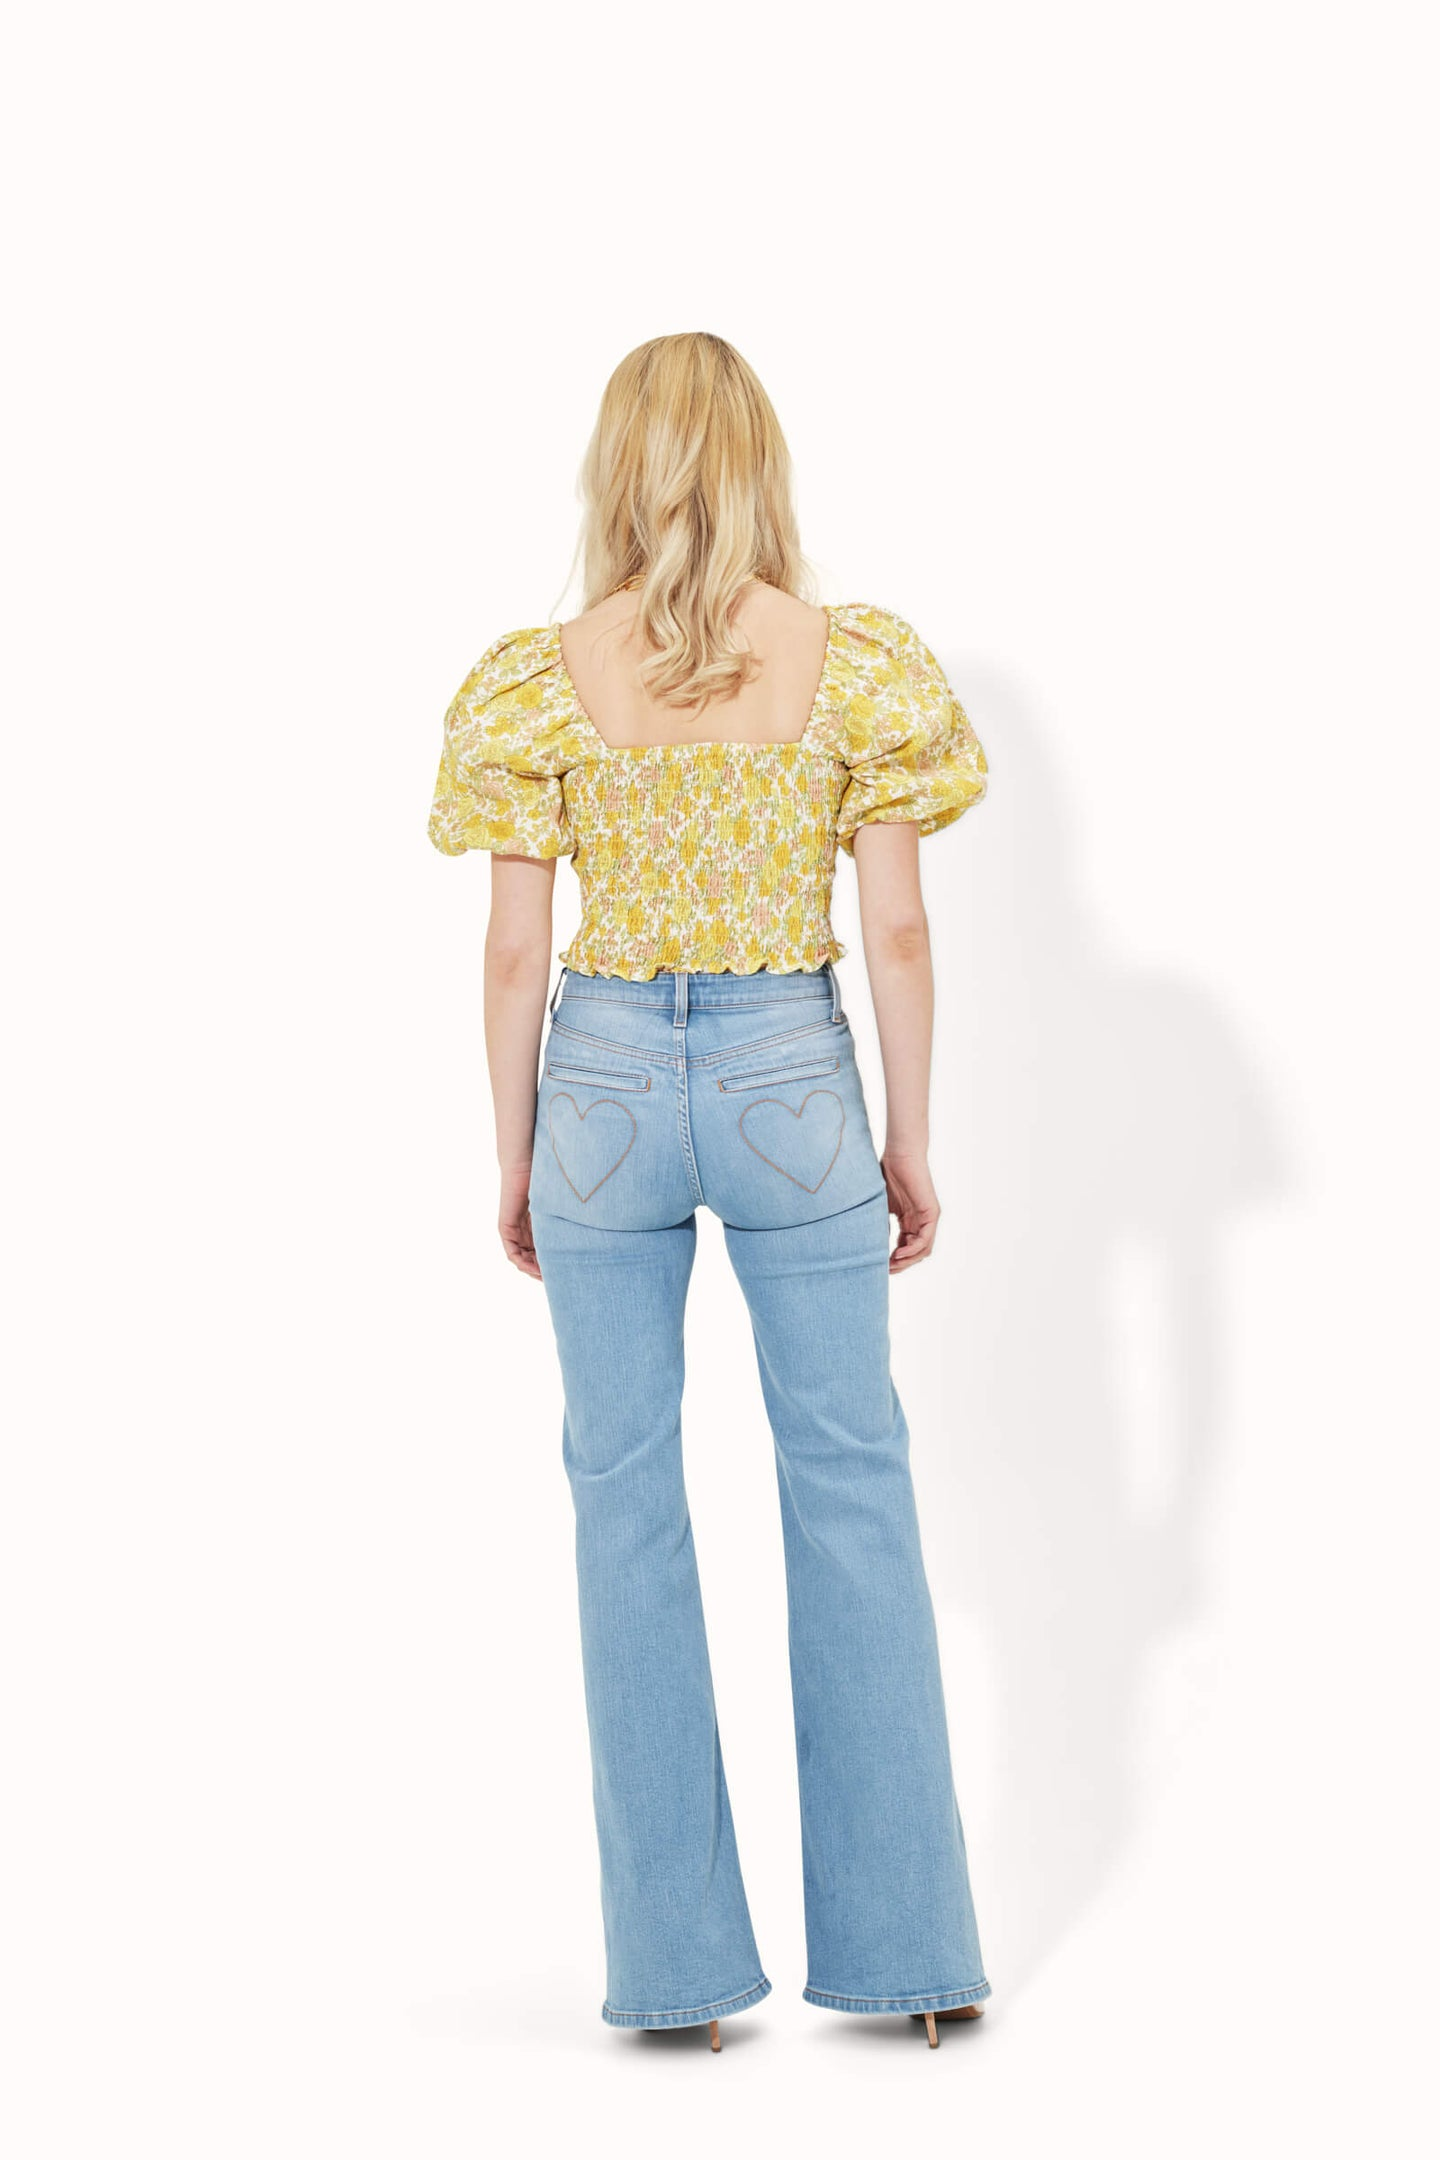 Delilah The High Top Patch Pocket Heart Throb Jeans - Summer Fling